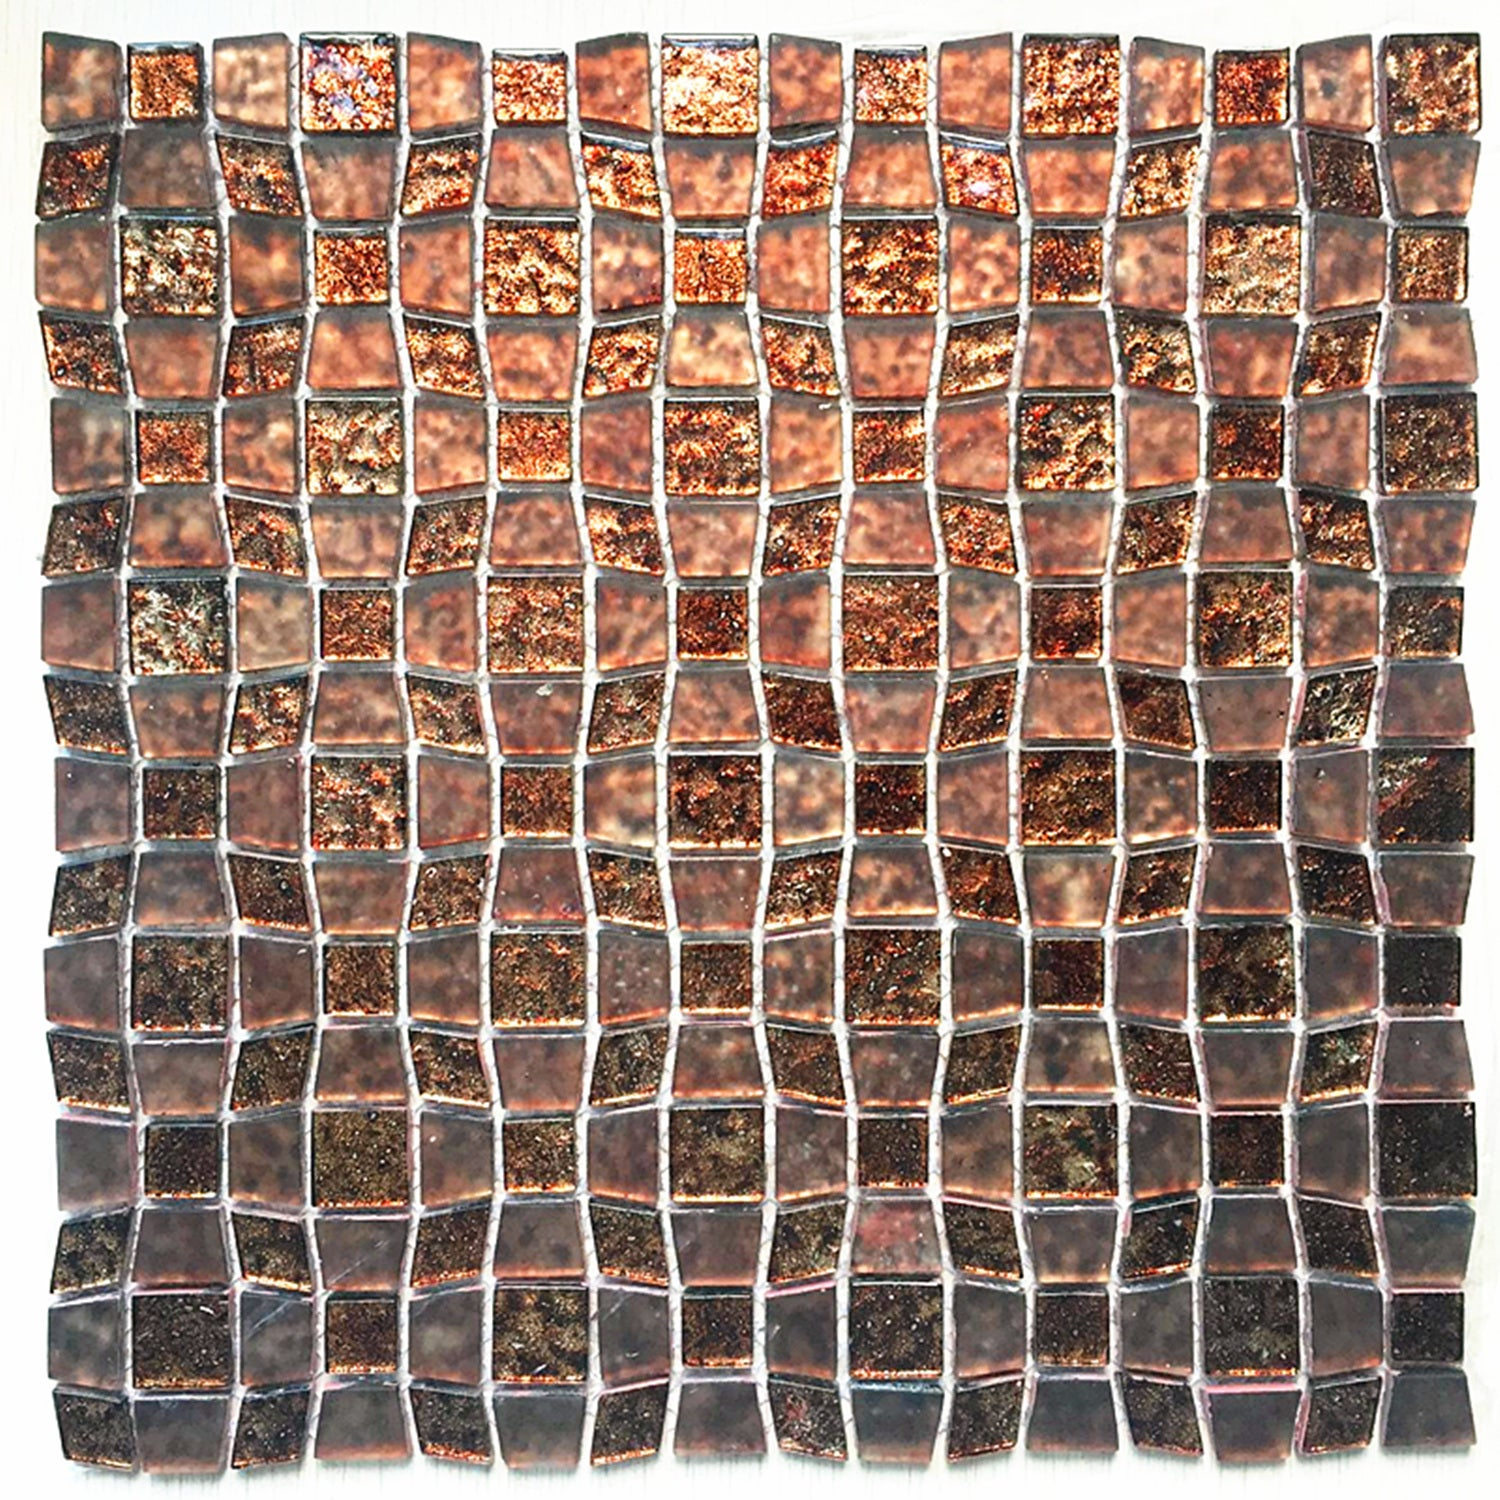 - Shop Instant Mosaic Peel And Stick 11.5-inch Glass Mosaic Wall